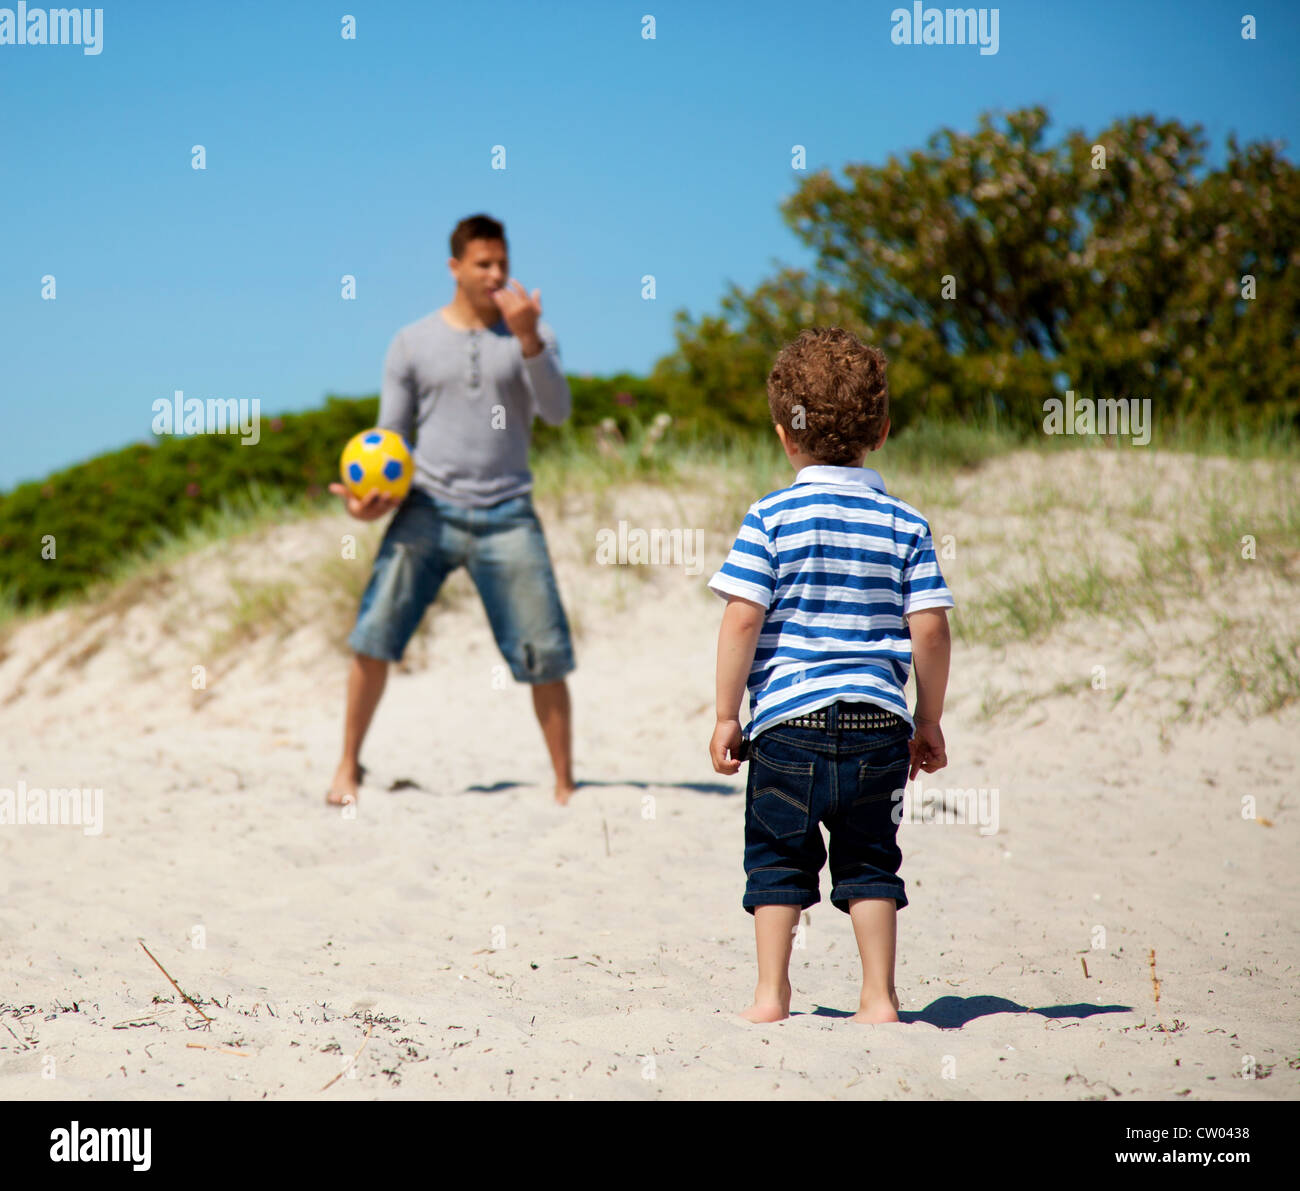 Child looking at his dad teaching him how to play soccer outdoors - Stock Image